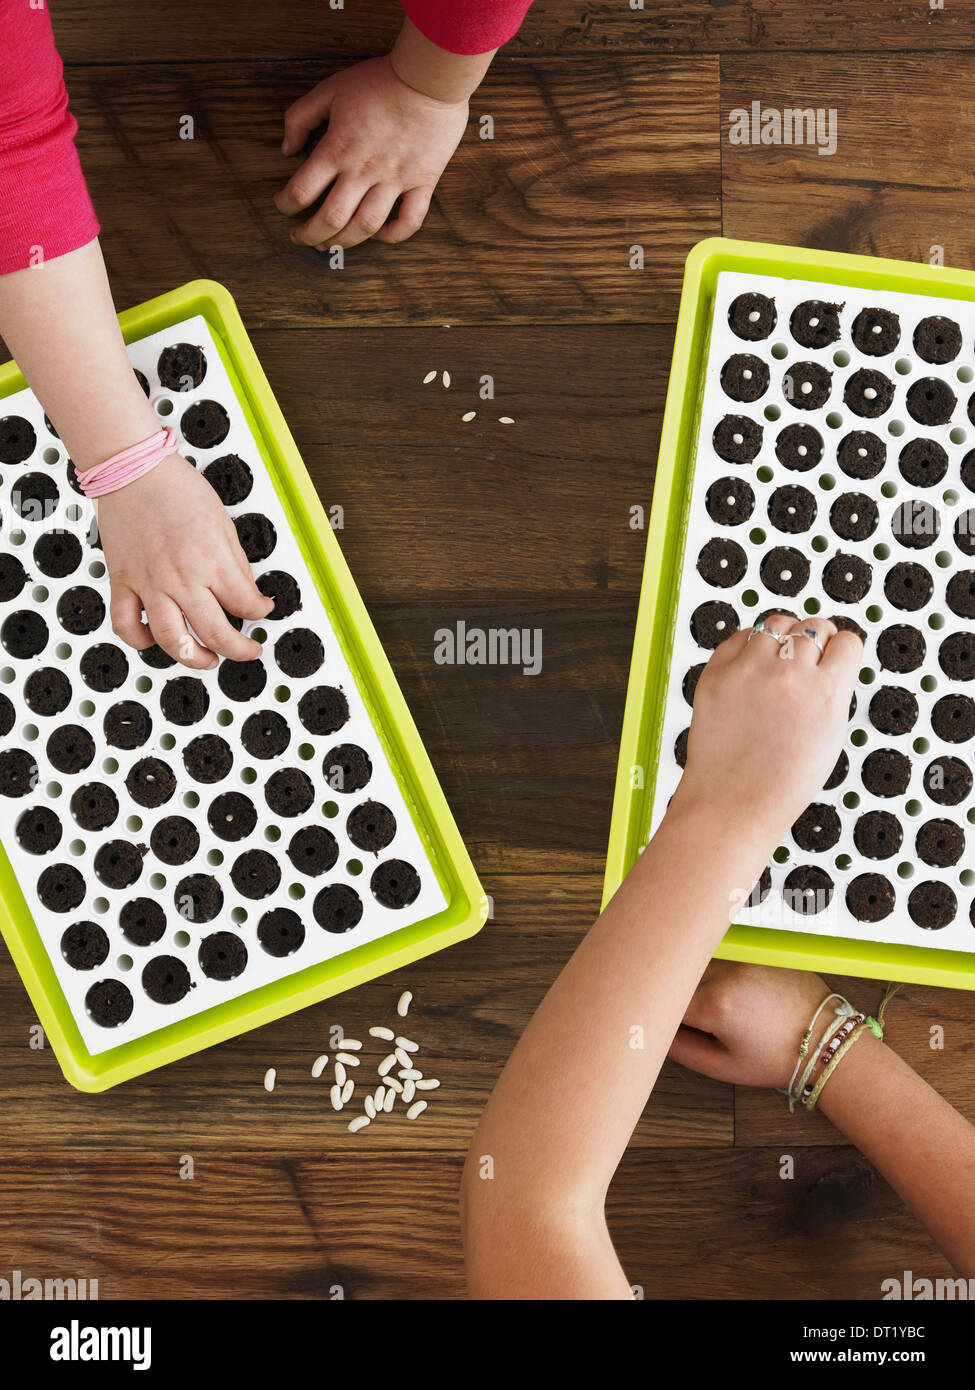 View from overhead of two children planting seeds into a seed growing tray - Stock Image